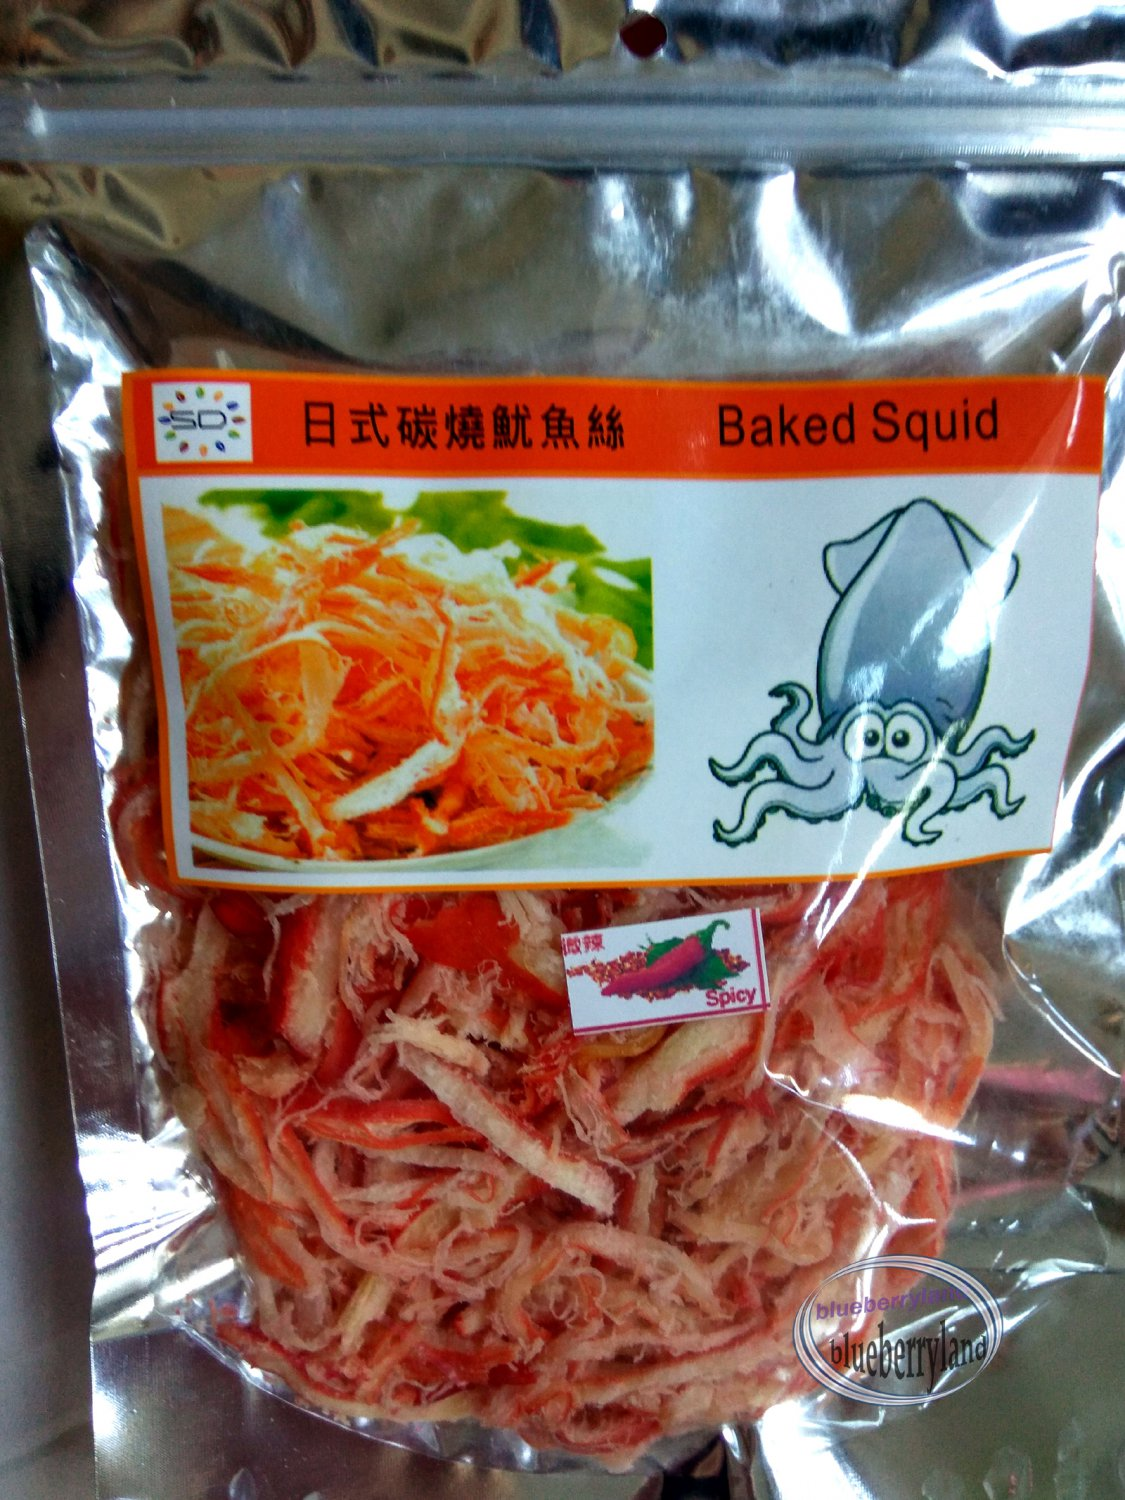 Baked Squid Spicy flavored Snack 100g kids pack party ladies food snacks